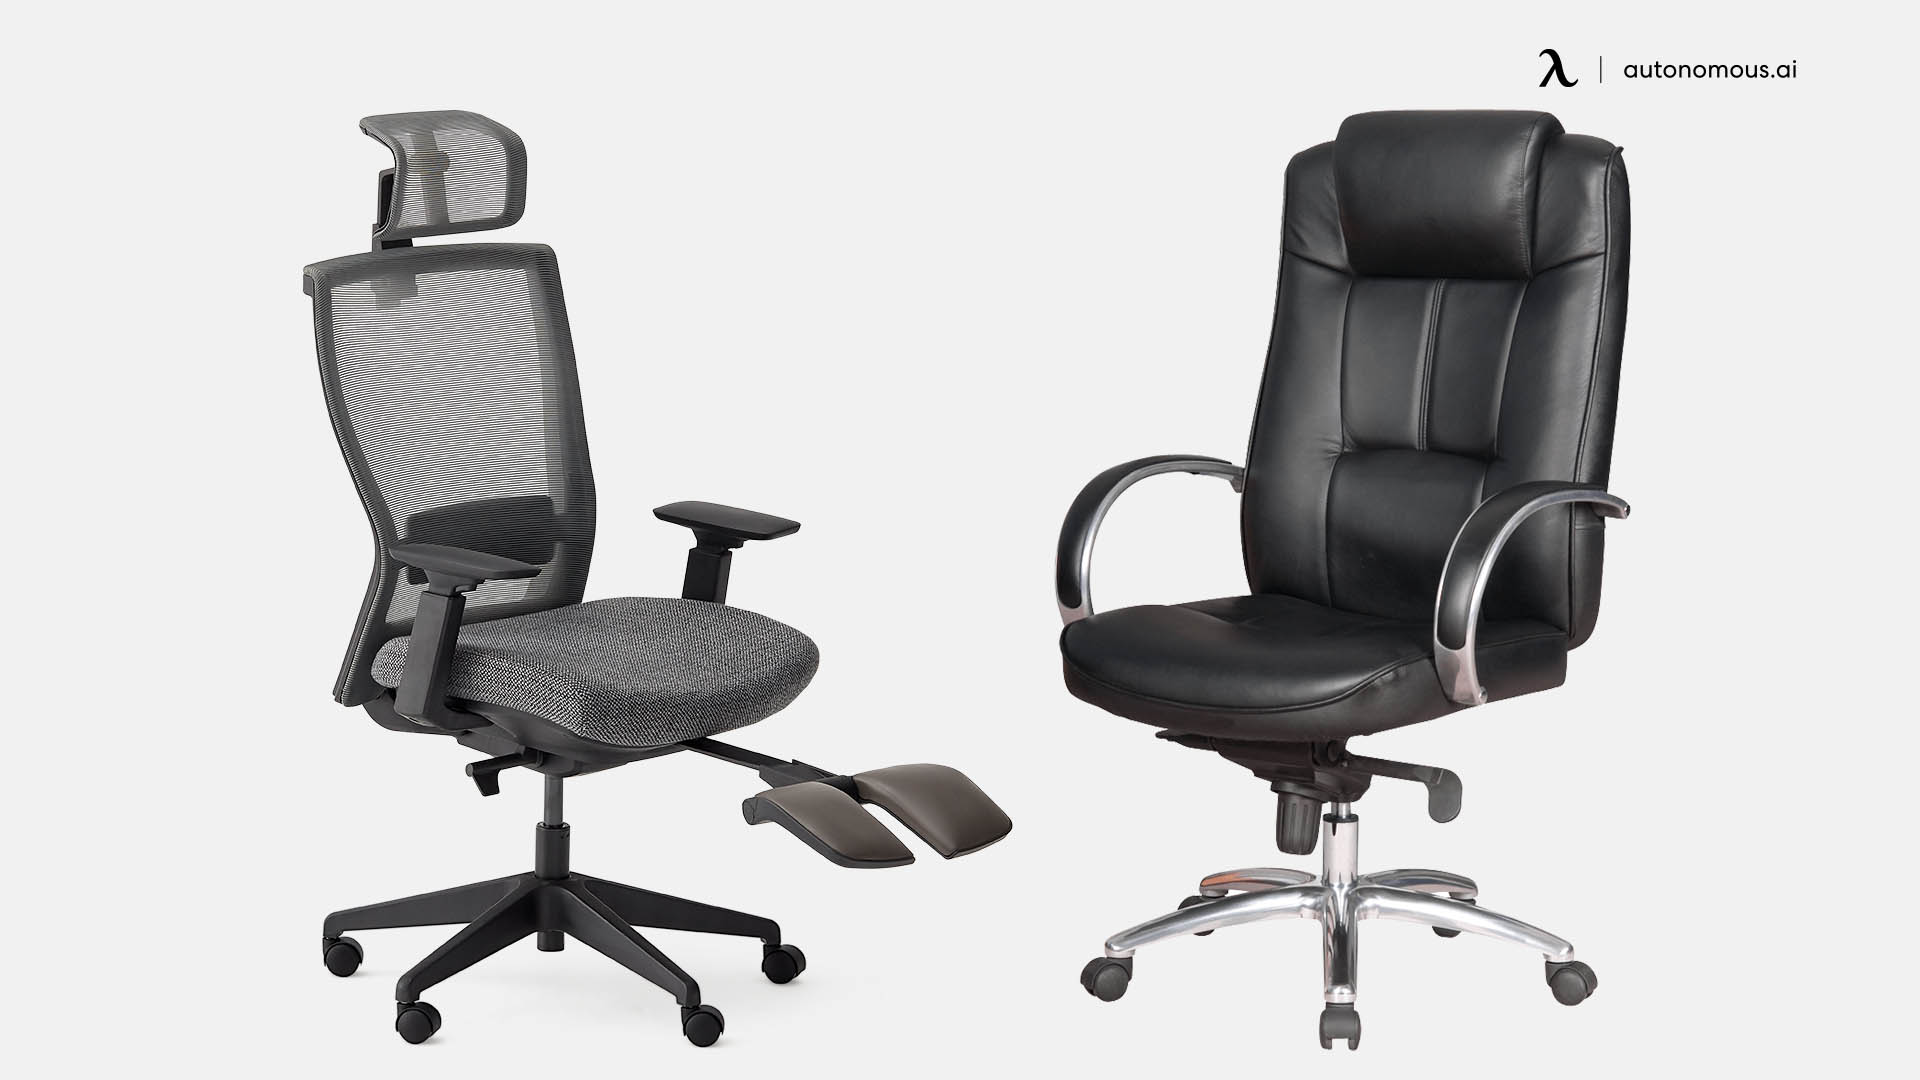 Mesh Chairs vs Leather Chairs